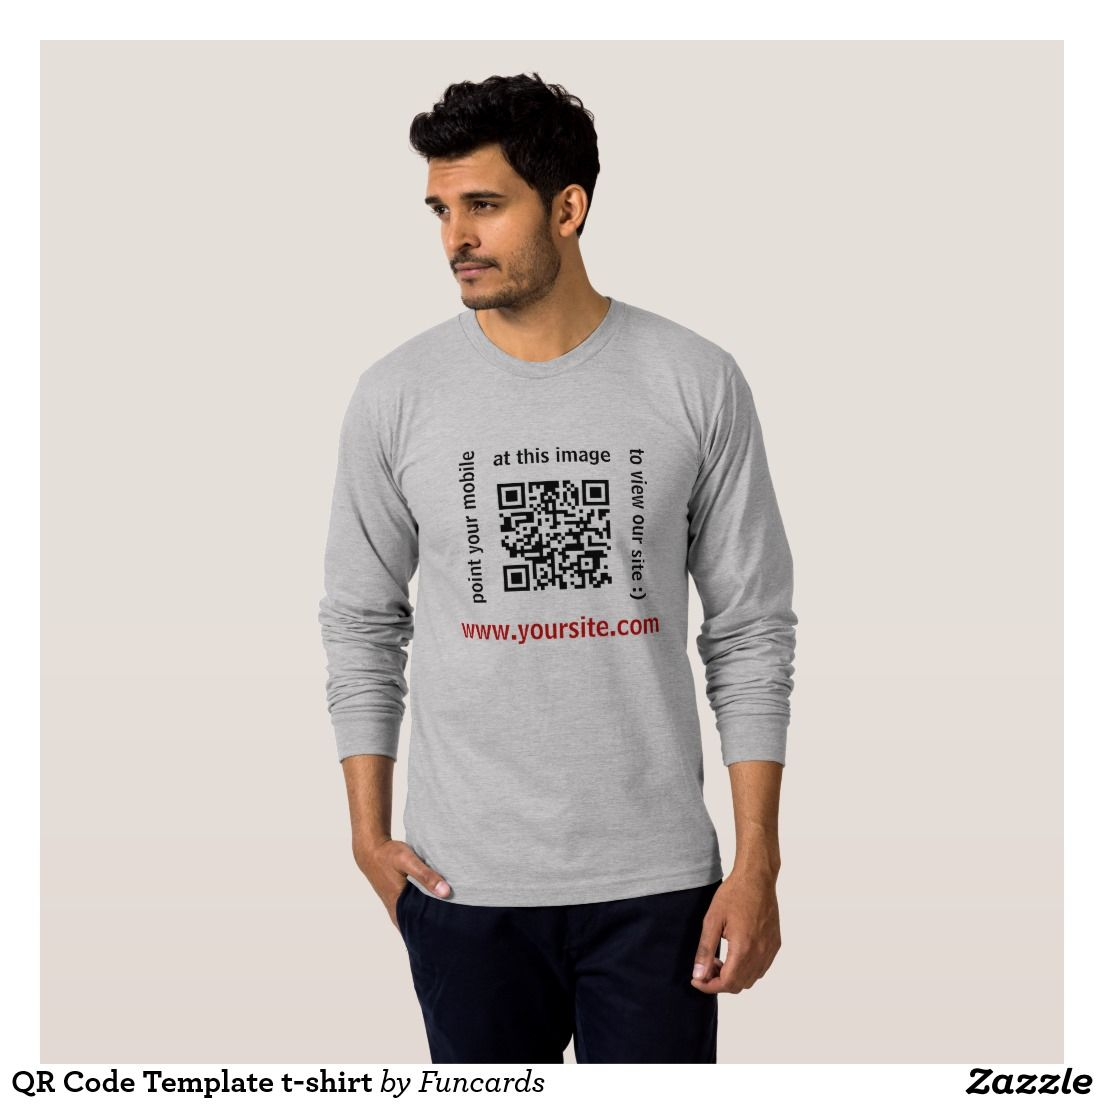 Zazzle t shirt design template - Explore Ant Man Design Thinking And More Qr Code Template T Shirt